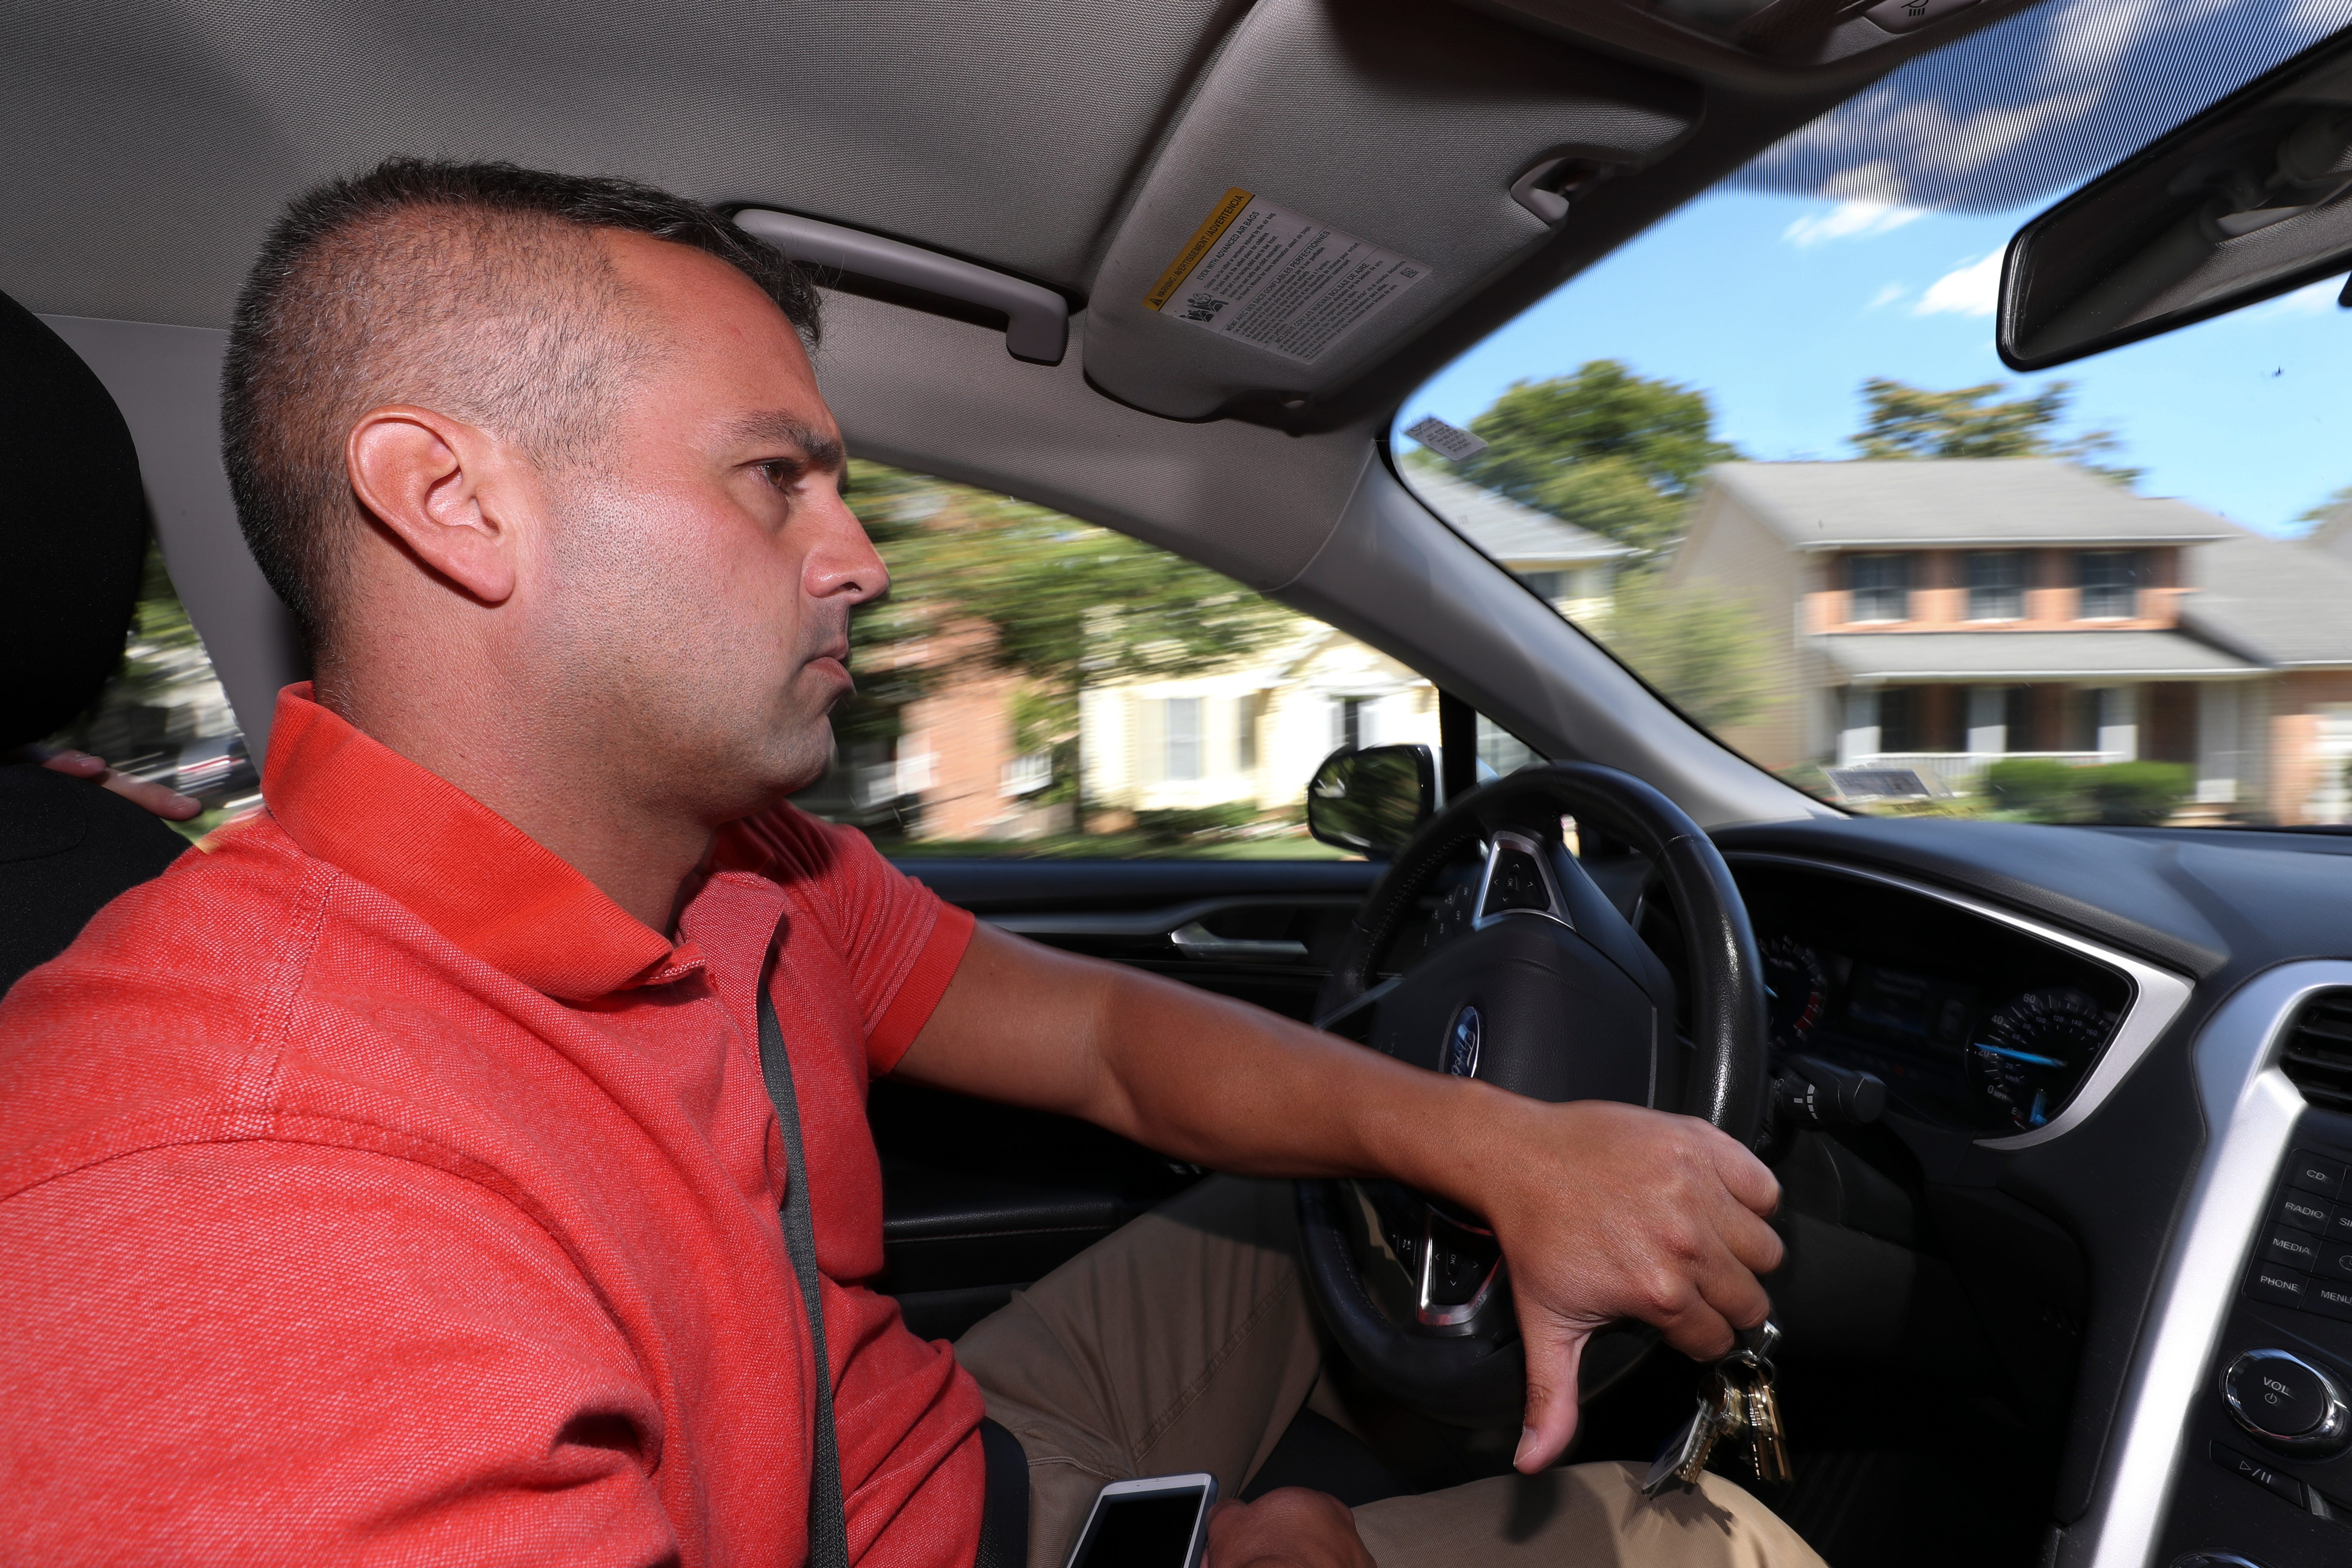 Josiah Schiavone, a member of the Virginia State Police, drives through downtown Winchester, Virginia. Prosecutors in 2018 said drugs were trafficked by associates connected to Mexico's Cartel Jalisco Nueva Generación, or CJNG.